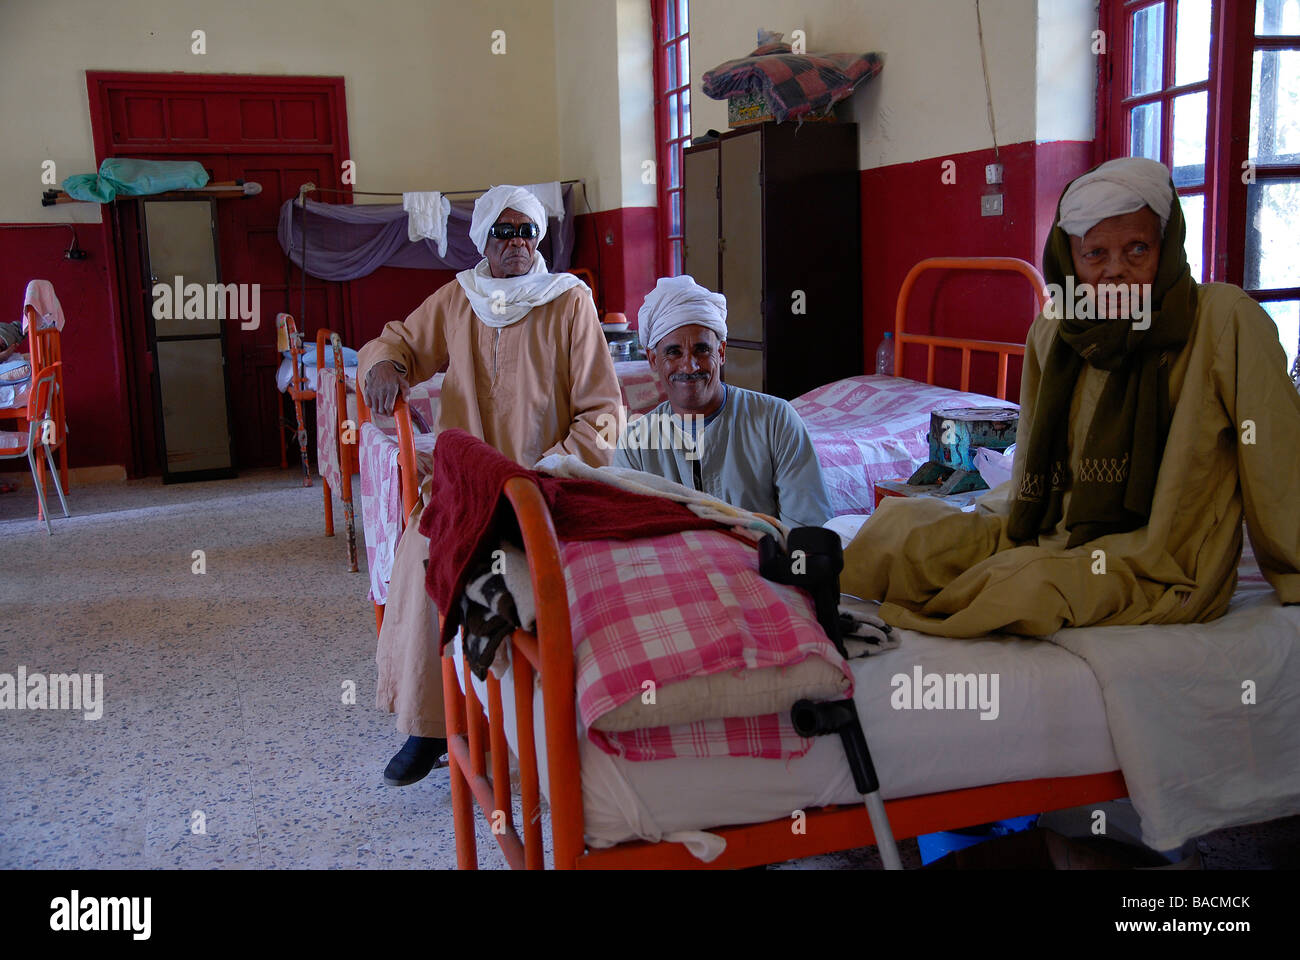 Three leprosy patients in Egypt's leprosy colony Abu Zaabal are gathering in their sleeping ward in the hospital - Stock Image